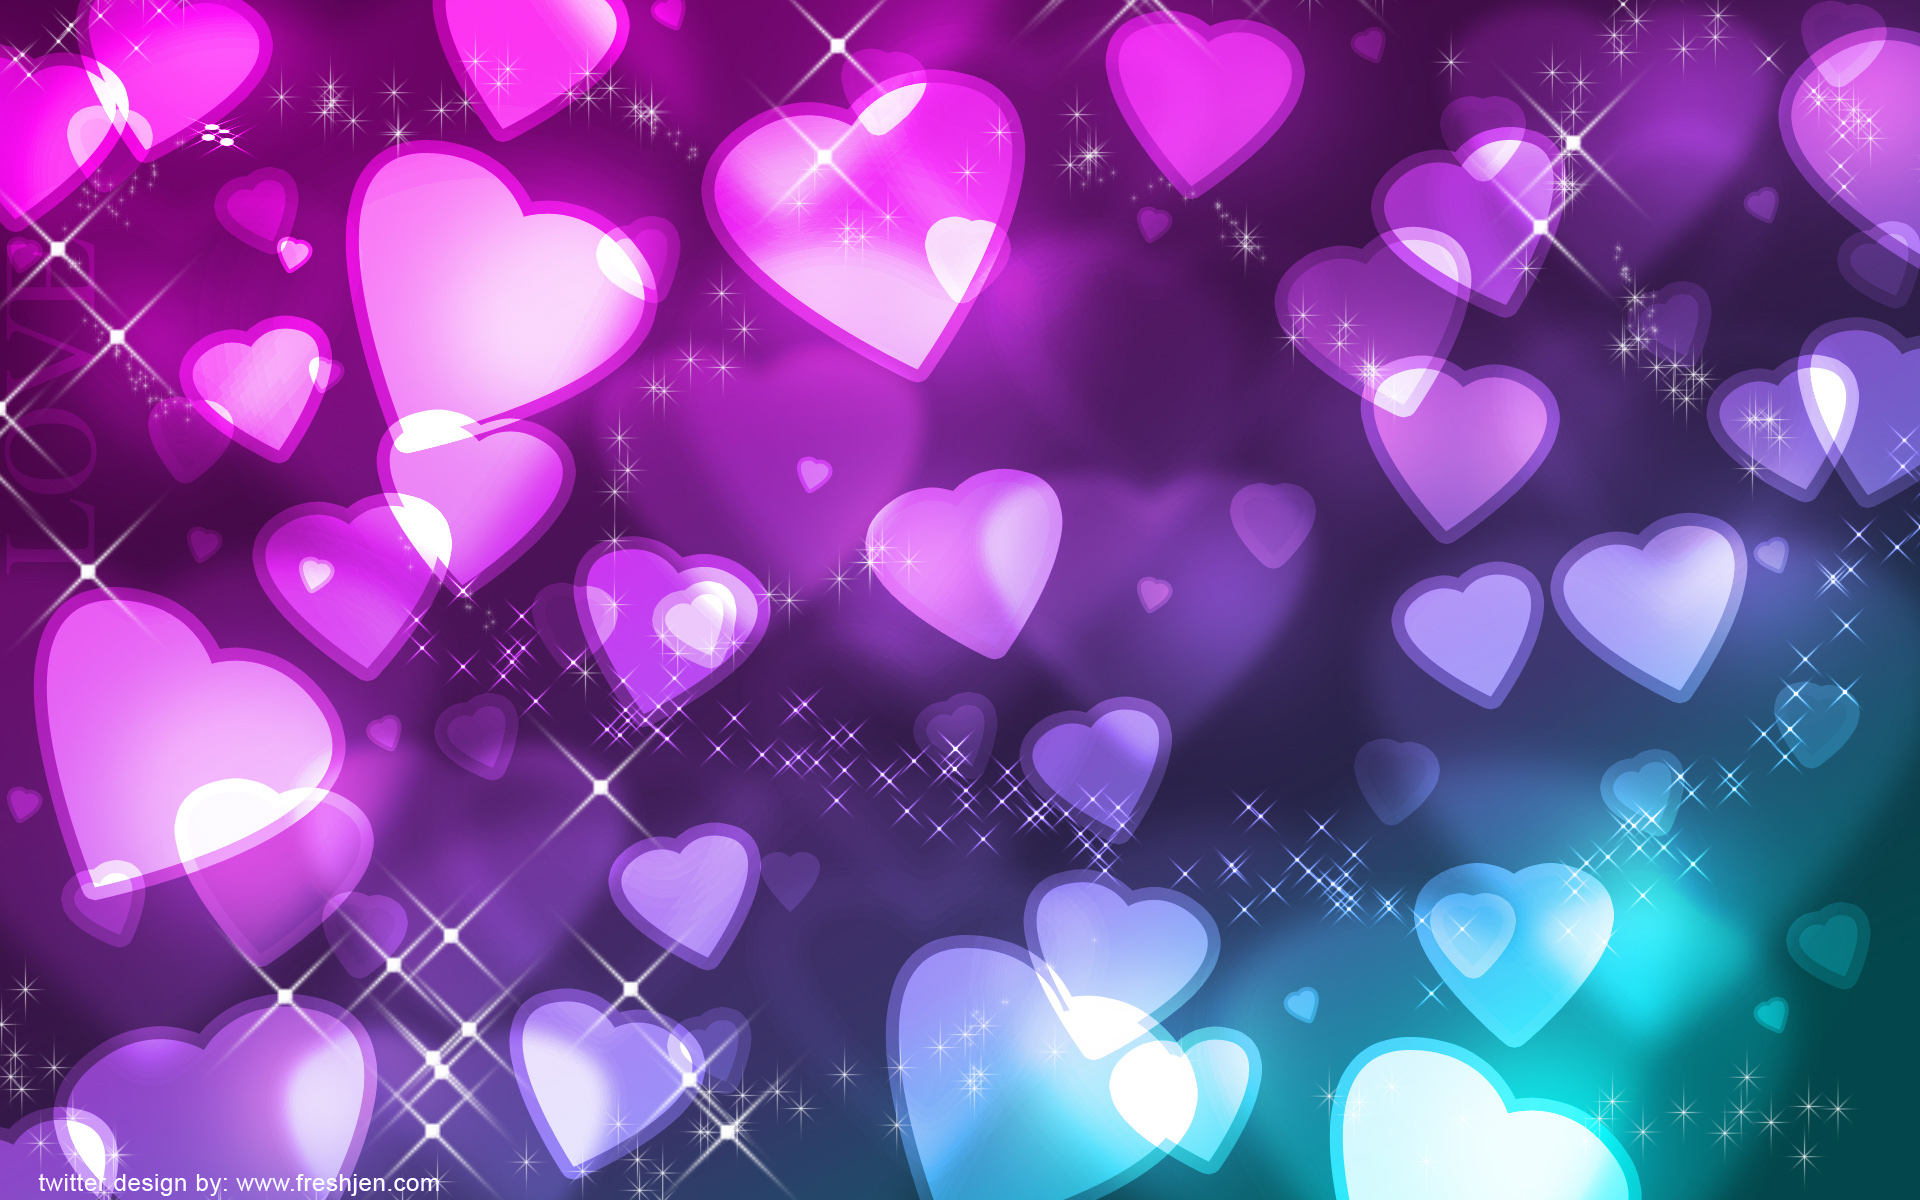 Twitter Background Backgrounds Heart Hearts Freshjen HD wallpapers 1920x1200